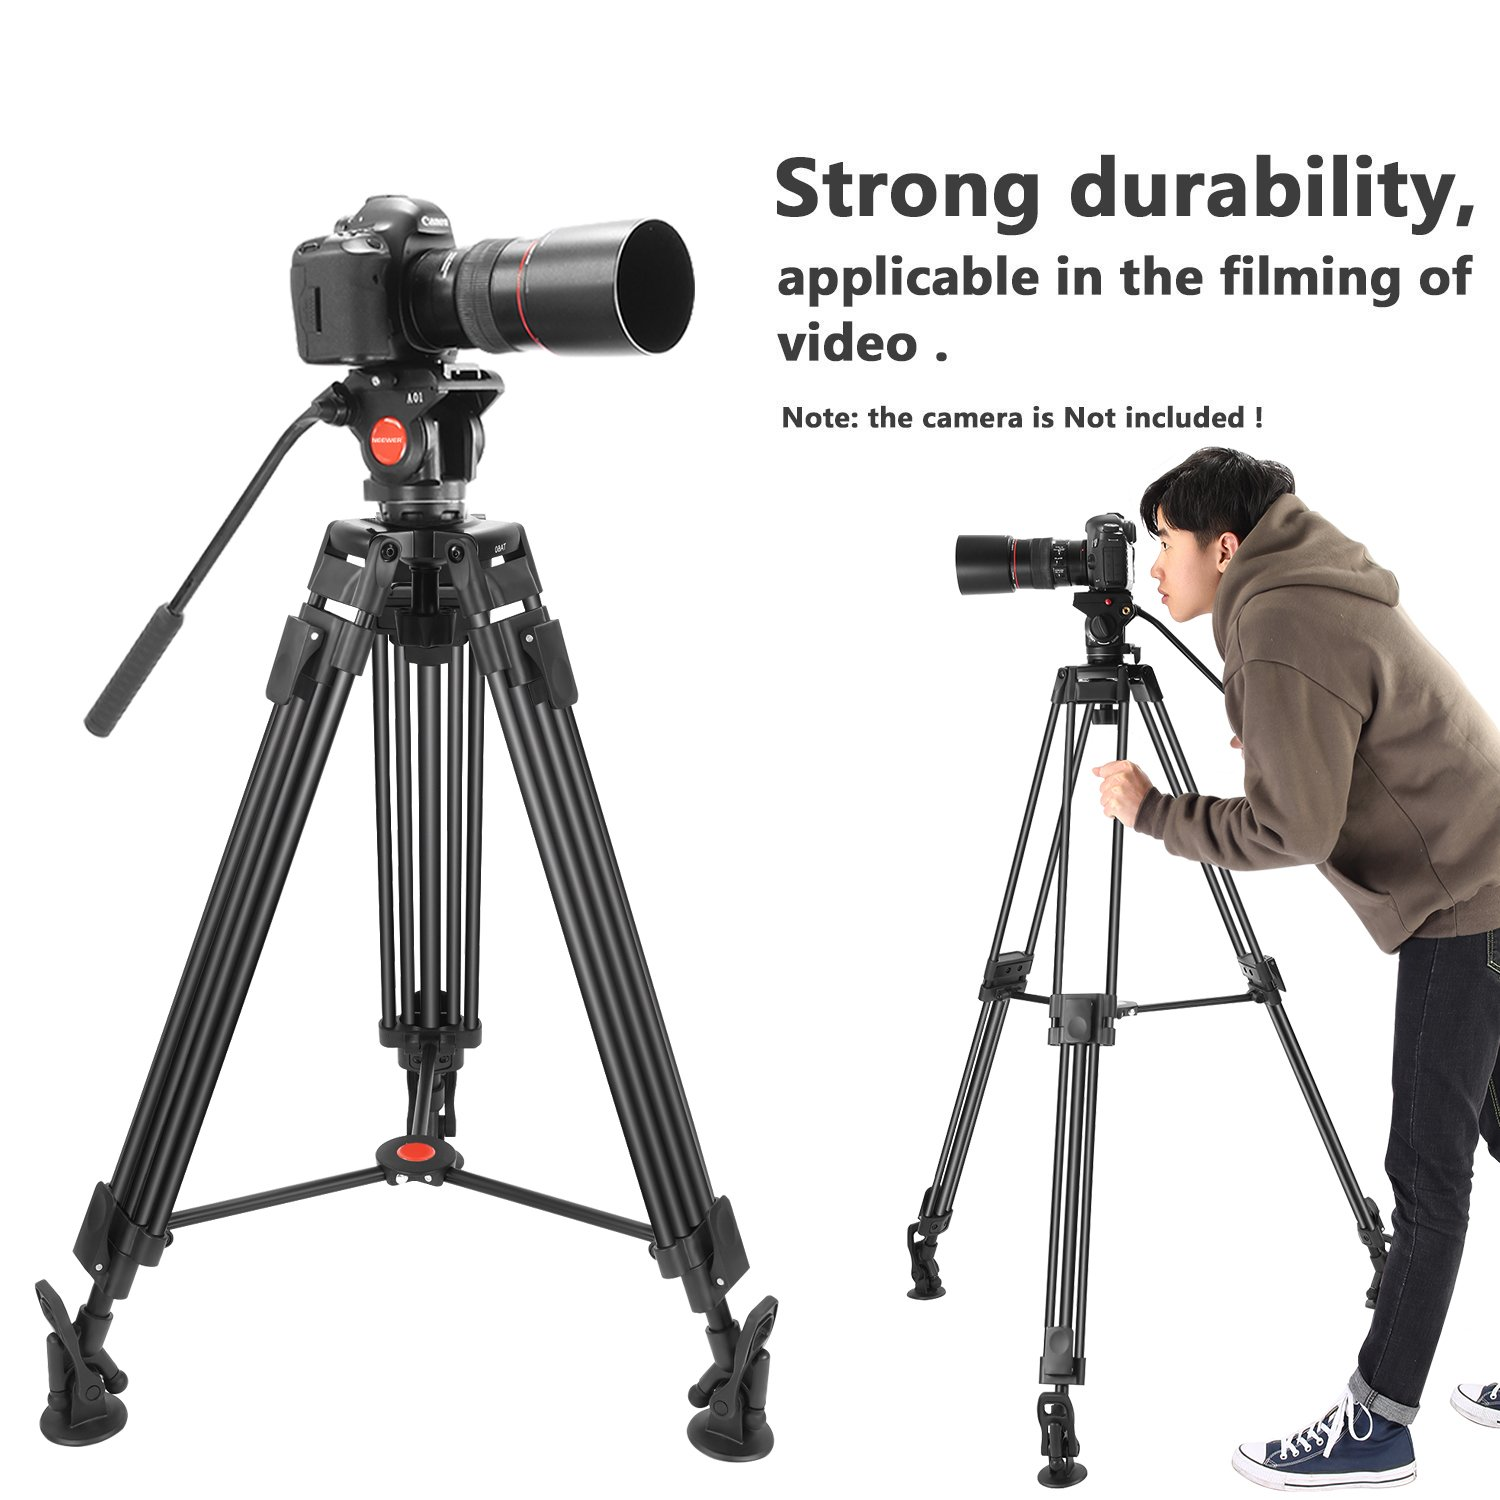 Neewer Professional Heavy Duty Video Camera Tripod,64 inches/163 Centimeters Aluminum Alloy with 360 Degree Fluid Drag Head,1/4 and 3/8-inch Quick Shoe Plate,Bag,Load up to 17.6 pounds/8 kilograms